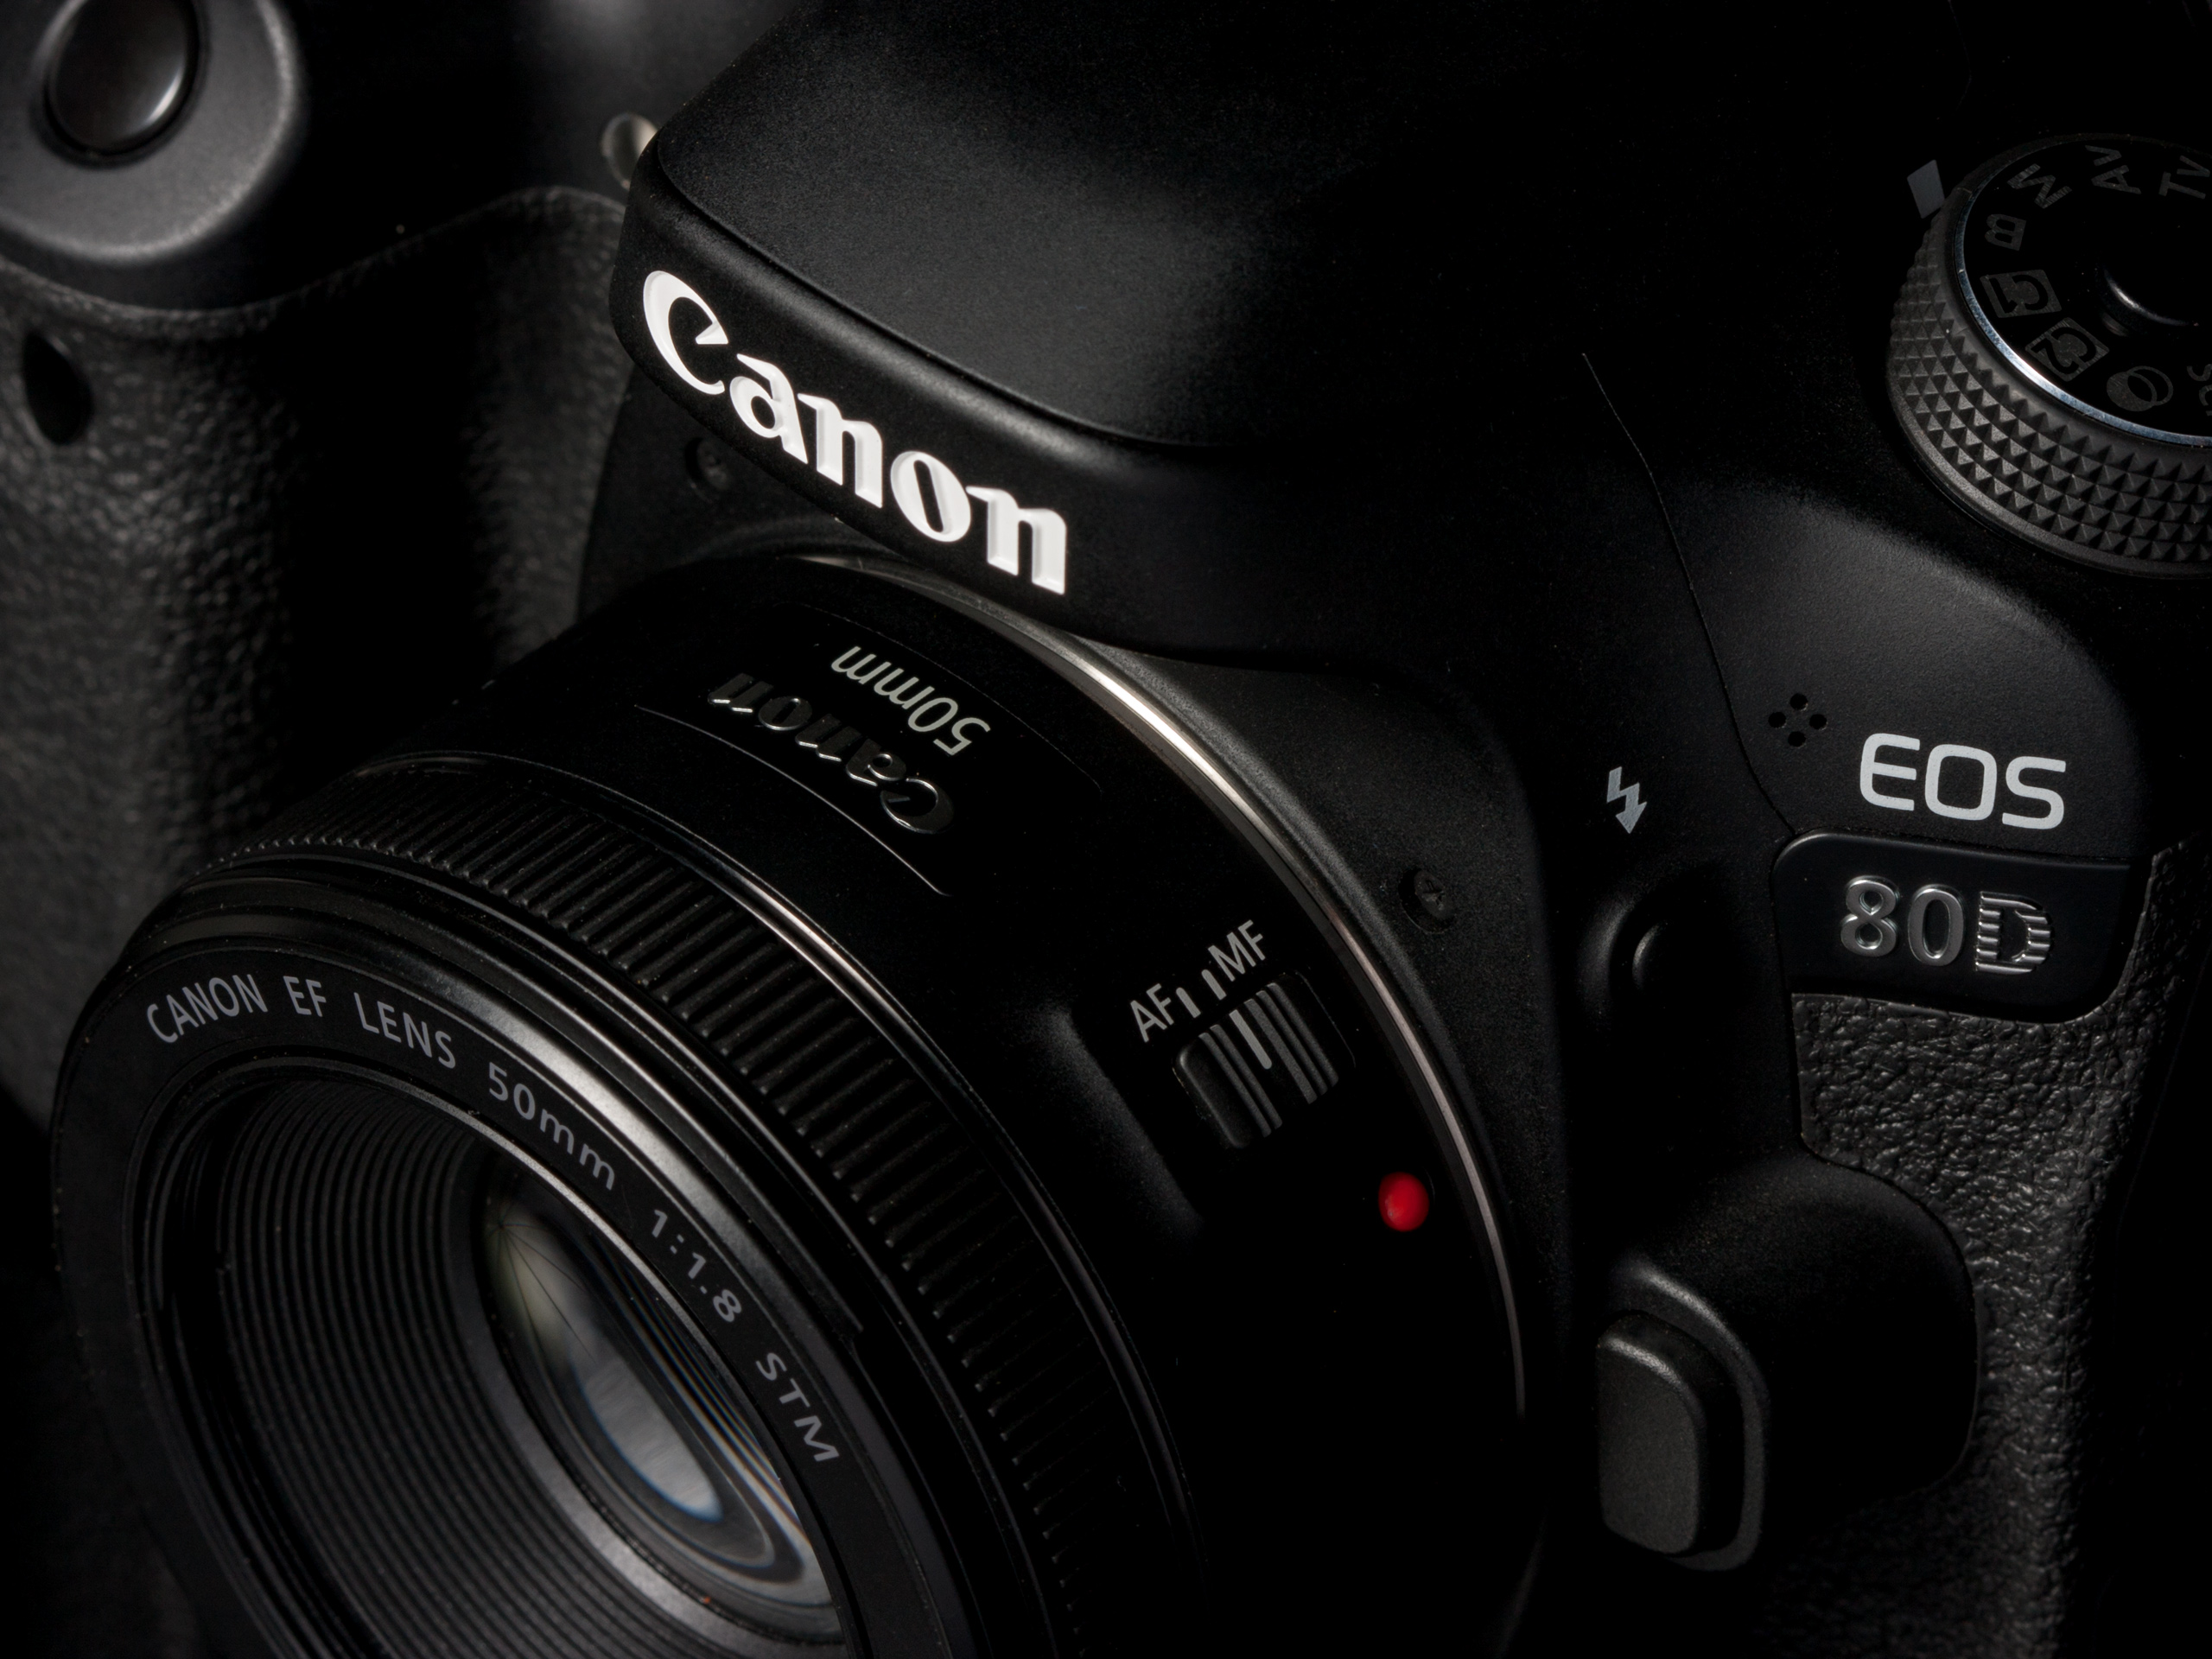 The Canon That Can Eos 80d Review Digital Photography 760d Kit Ef S 18 135mm F 35 56 Is Stm Wifi